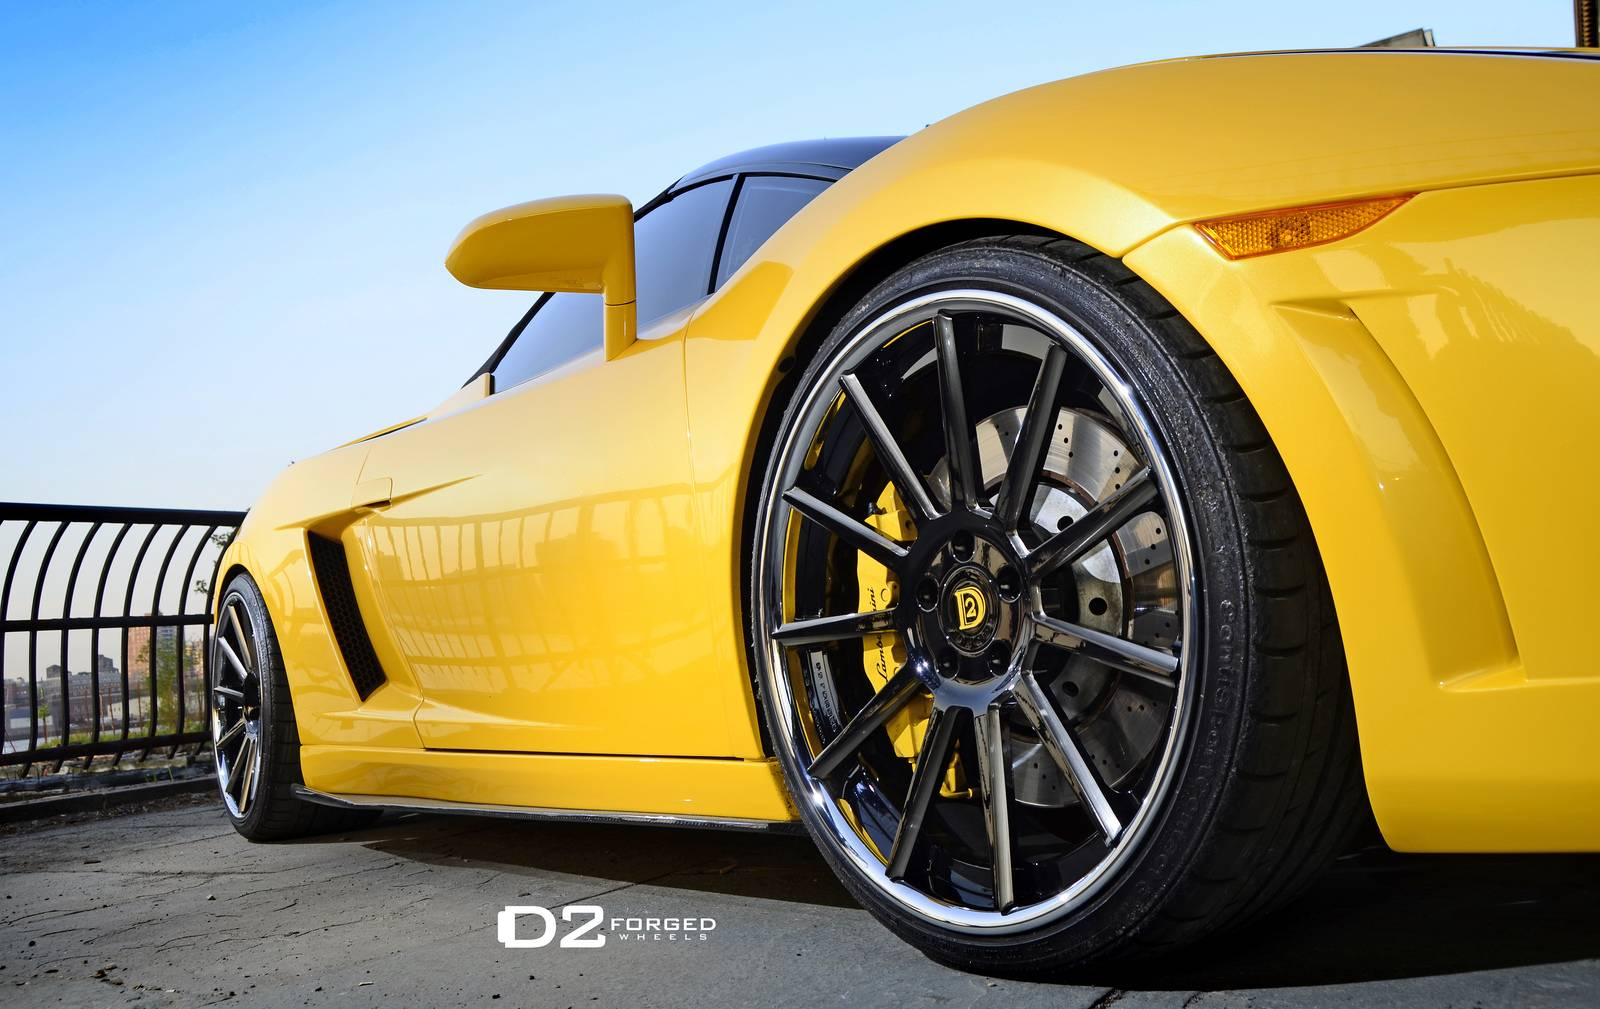 davide458italia lamborghini gallardo spyder on d2 forged wheels. Black Bedroom Furniture Sets. Home Design Ideas